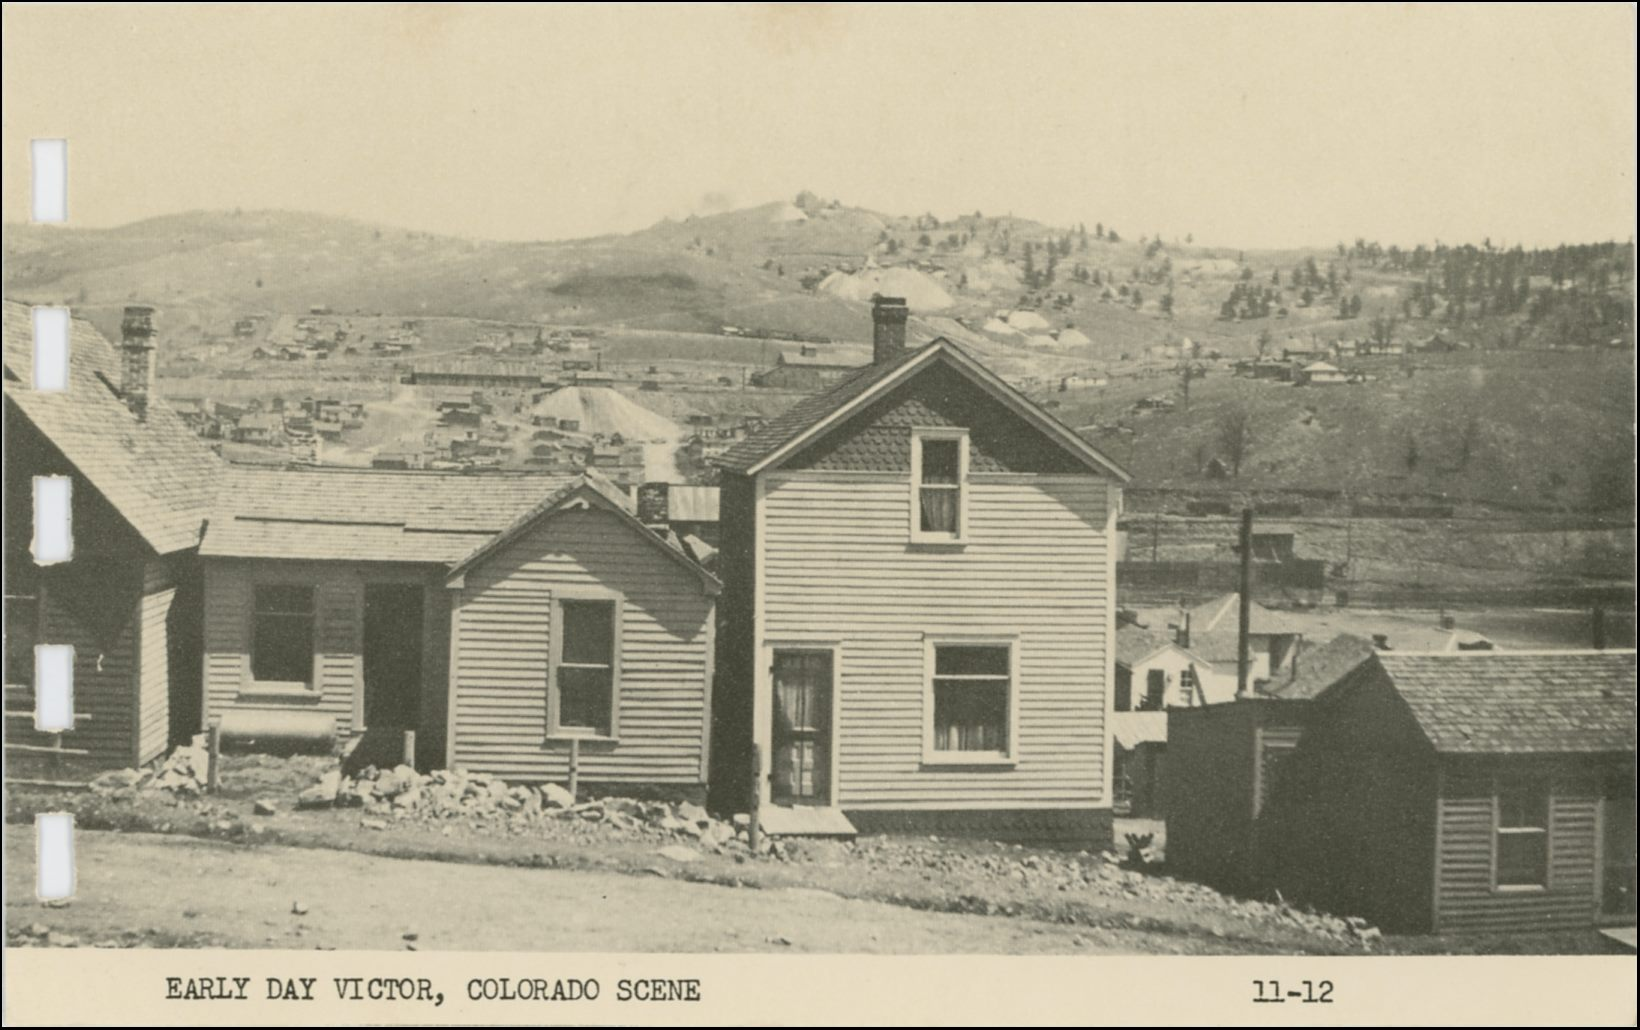 This view of Gold Hill from a street in southern Cripple Creek is mislabeled to be an early Victor scene for some unknown reason. Being this is from a printed card in a small more modern postcard folder it is not the greatest quality, but one gets an idea of the area it pictured. I've been unable to pinpoint the street in the foreground, but I think it might be the First Street, possible south Colorado Ave., but I doubt it as this don't look that far up the hill. * Either way, about center left/right and 1/3 down from top, behind the two-story house in foreground, on get to see the north half of the Cripple Creek Sampler, located up along the M.T. roadbed, with the Short Line railroad below it, having come around the hill at right hand side. Incidentally, the original locating of the sampler was along the F. & C.C. grade seen just below the top/down center on the right-hand side, and would have been hidden by the same two-story house. * About 1/3 down from top, and 1/3 from left-hand side, a long structure will be seen, that is the Trolley Barn for the High/Low Lines of the Electric System of the Short Line railroad. The big dump just right of the Trolley barn I think is part of the Cripple Creek & Gold Hill Deep Mining & Development Company operations. * Straight up from the chimney on the before mention 2-story house there is a big dump that I think is part of the Midget operations. * About center left/right and not fully 1/6 down from top, above the before mention Midget, is the characteristic shape of the large Shaft-House of the Anchoria-Leland mine seen against the sky at top of Gold Hill.